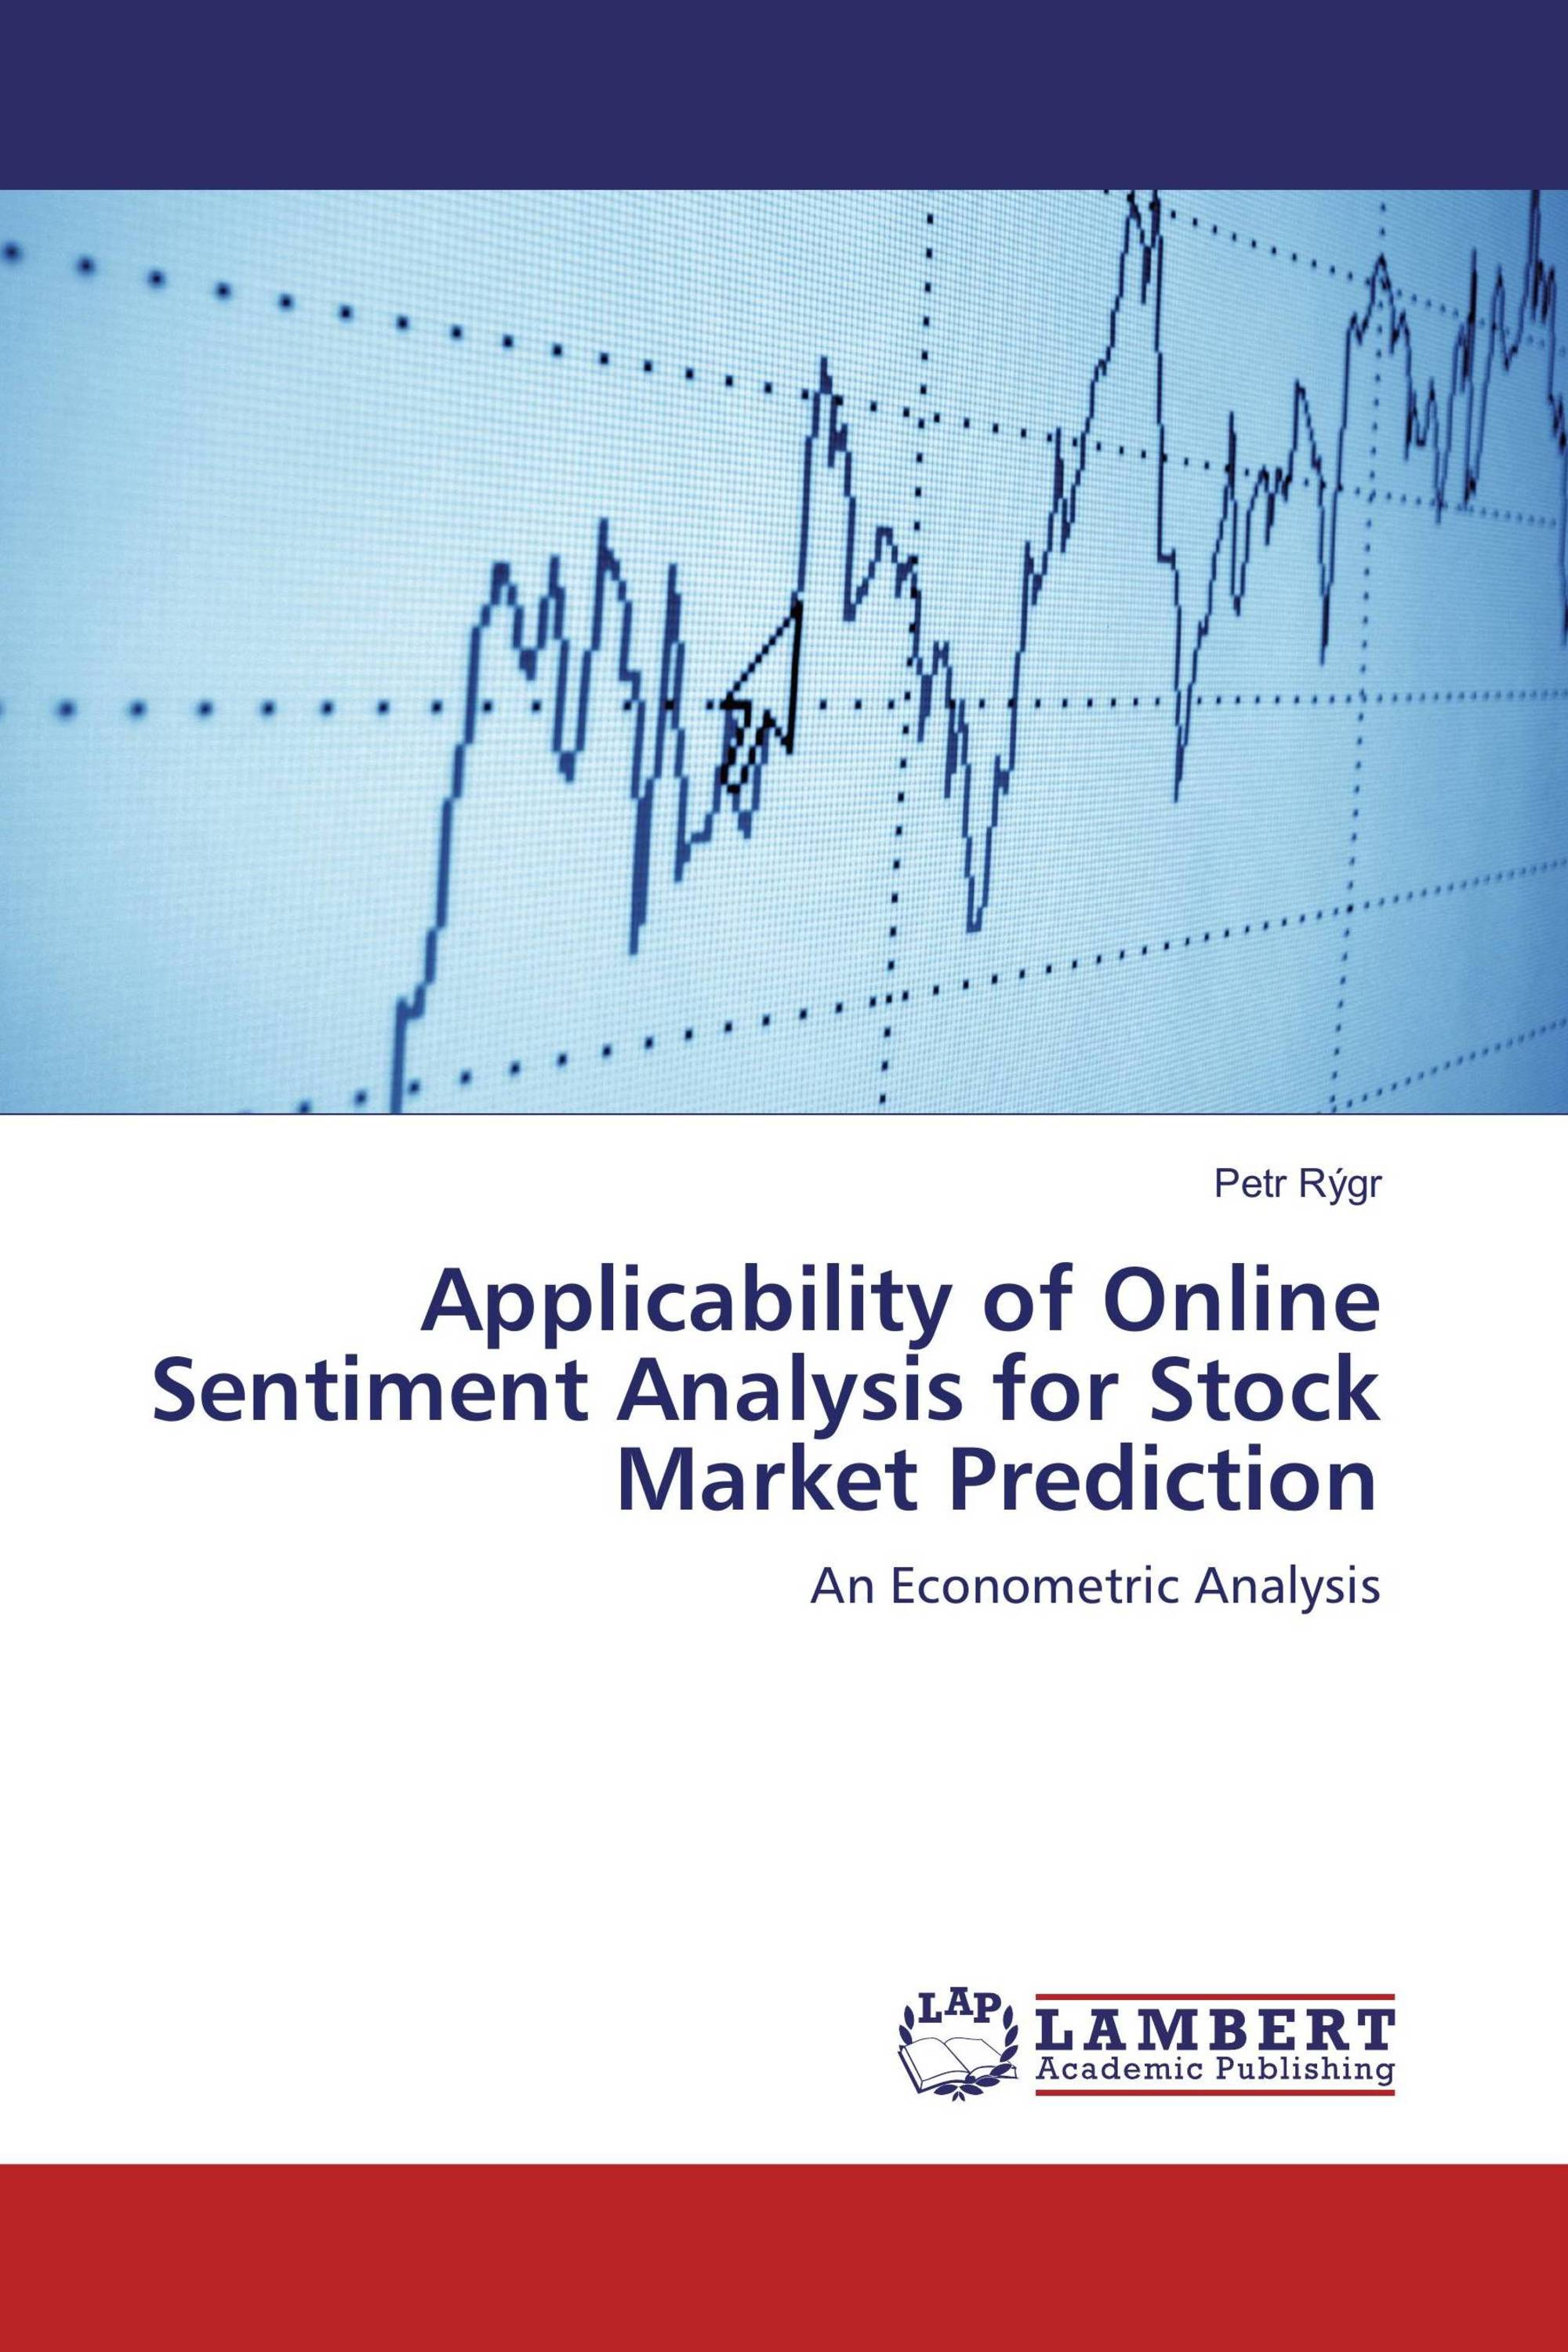 Applicability of Online Sentiment Analysis for Stock Market ...